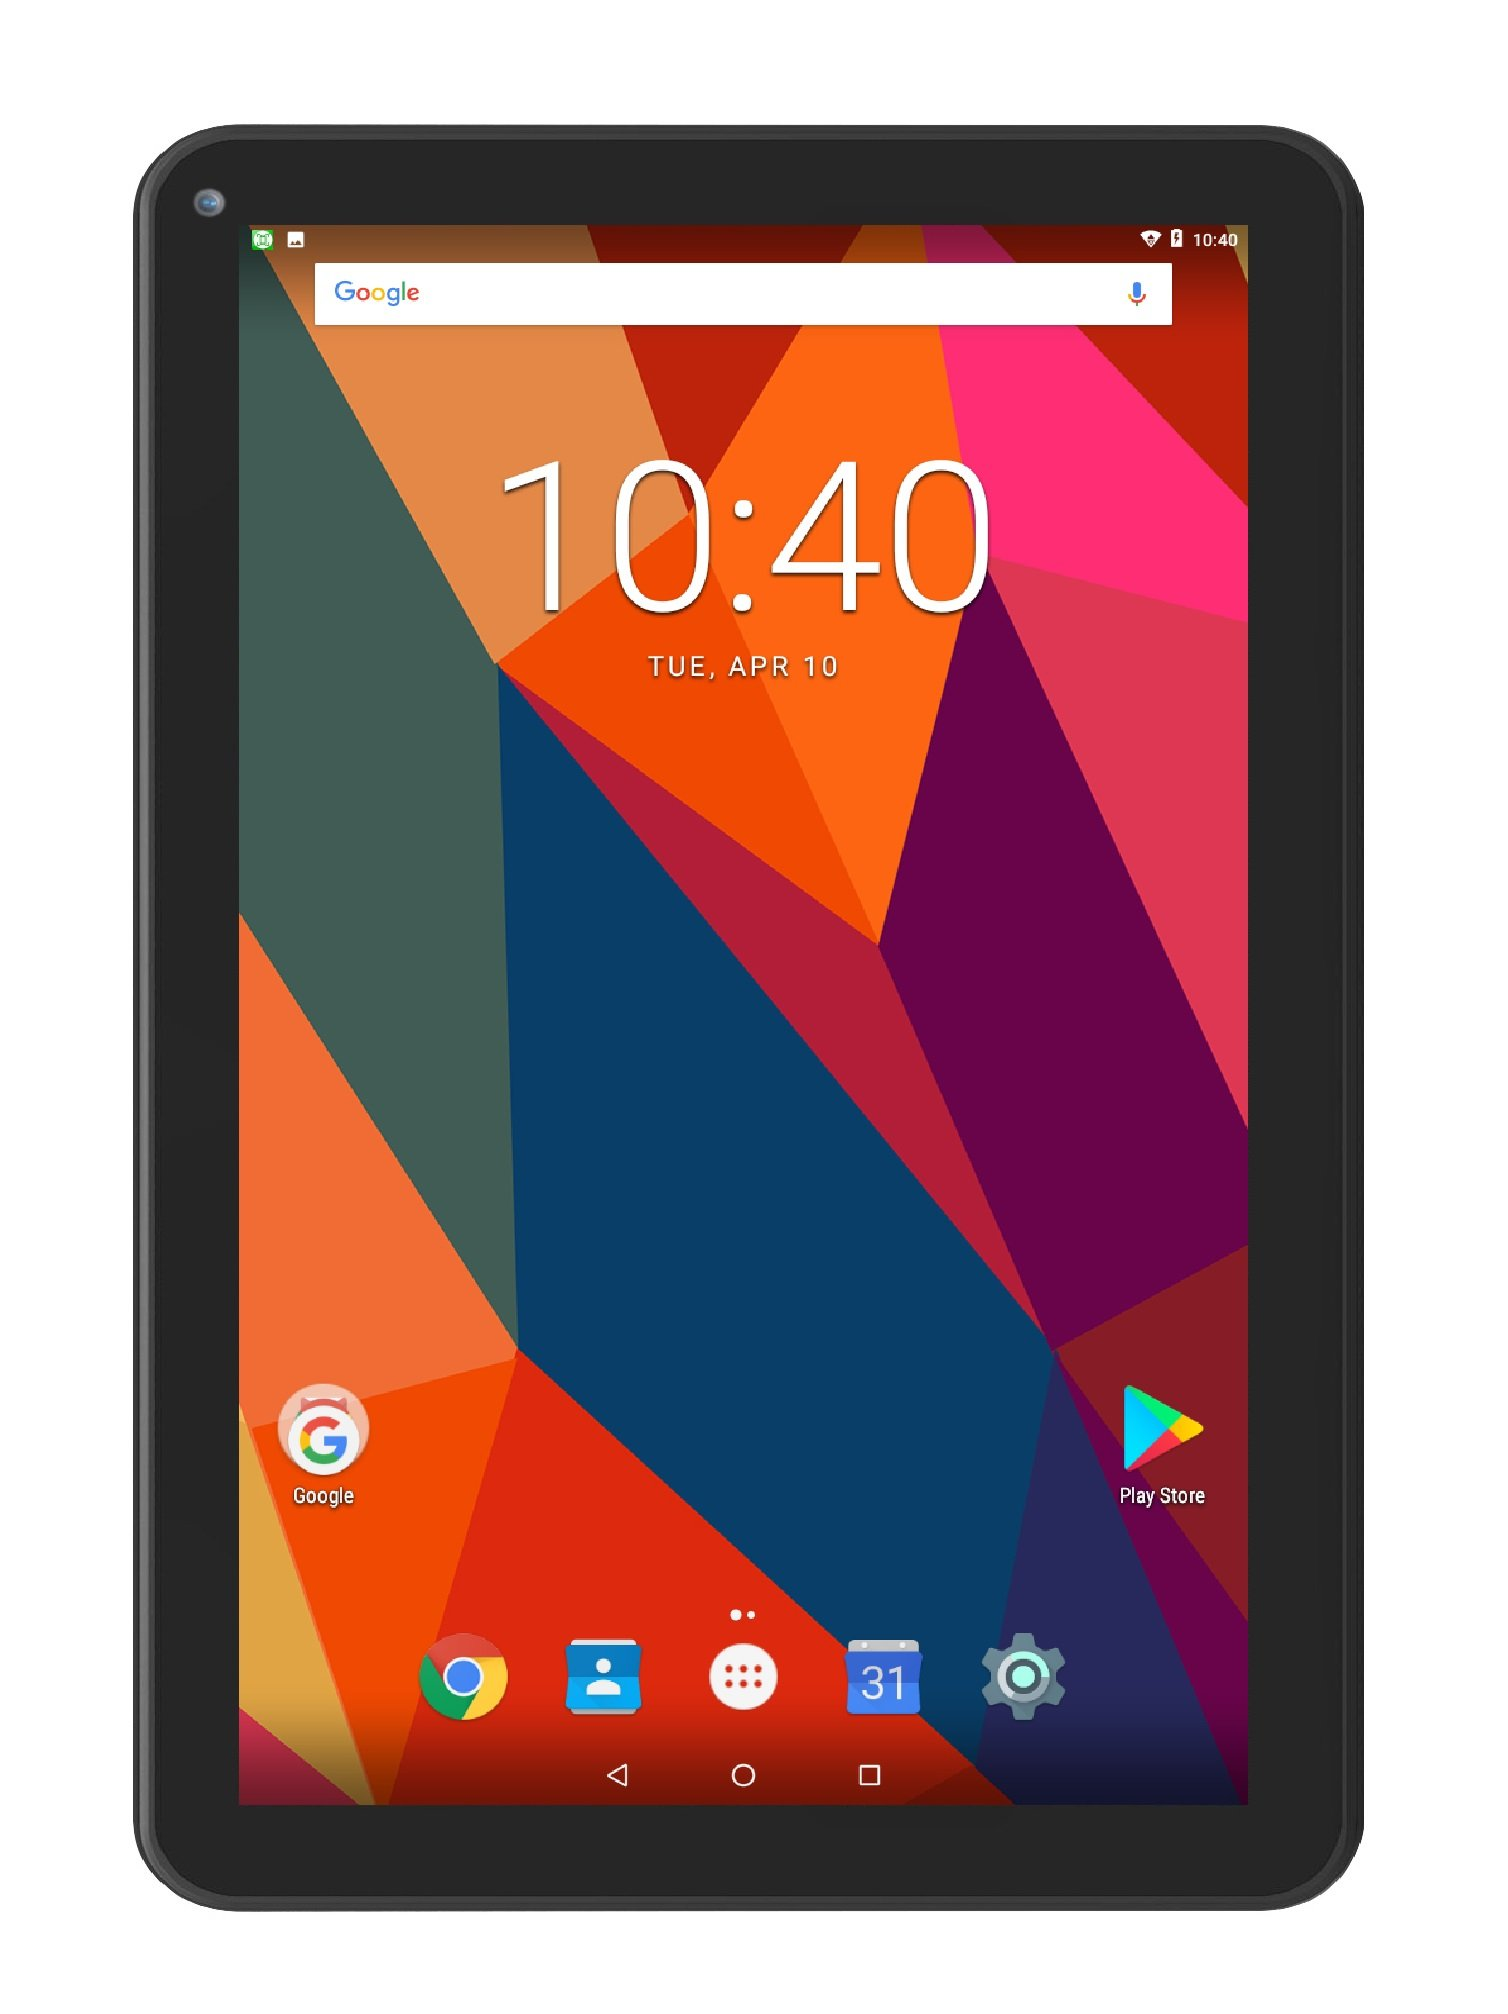 Astro Tab M10-10 Inch Quad Core 64 bit Android 7.0 Tablet PC with HD IPS Display 1280 x 800, 1GB RAM, 16GB Storage, Bluetooth 4.0, 10 inch Screen, Google Play (GMS & FCC Certified)